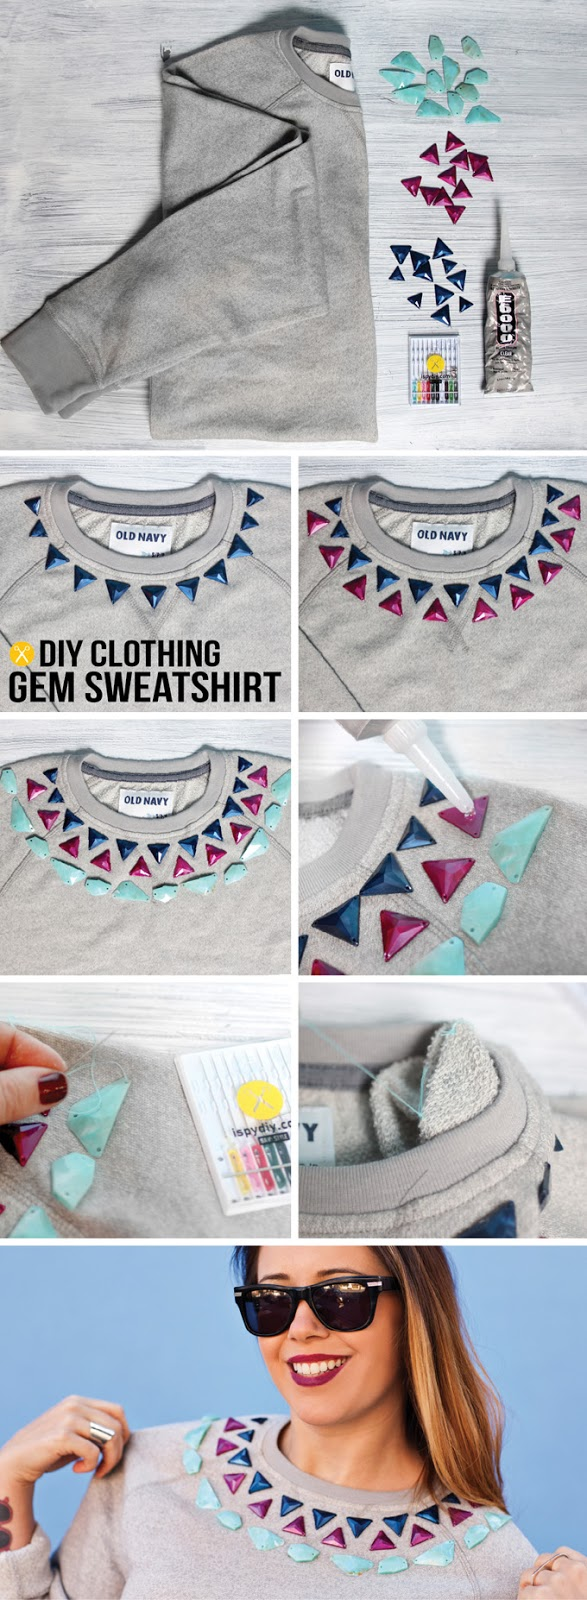 GEM EMBELLISHED SWEATSHIRT